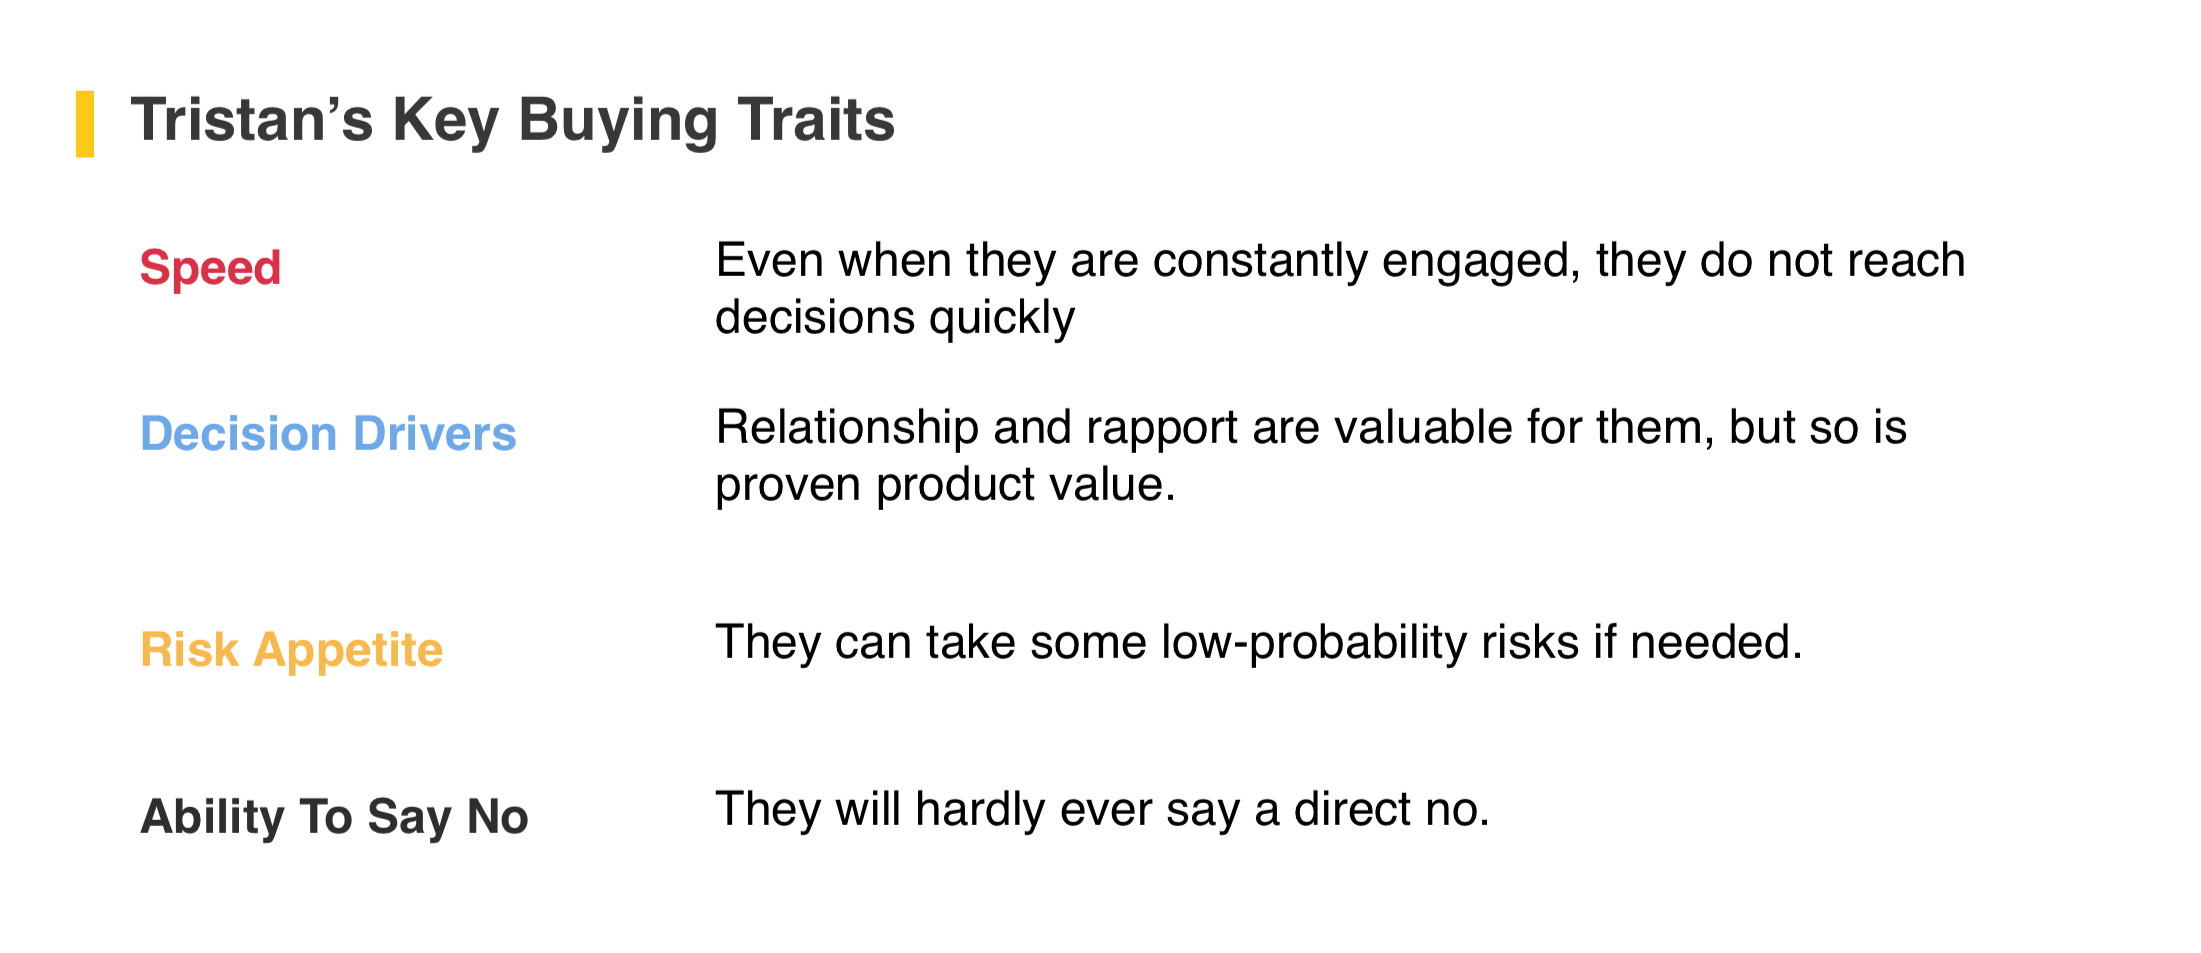 Tristan's key buying traits